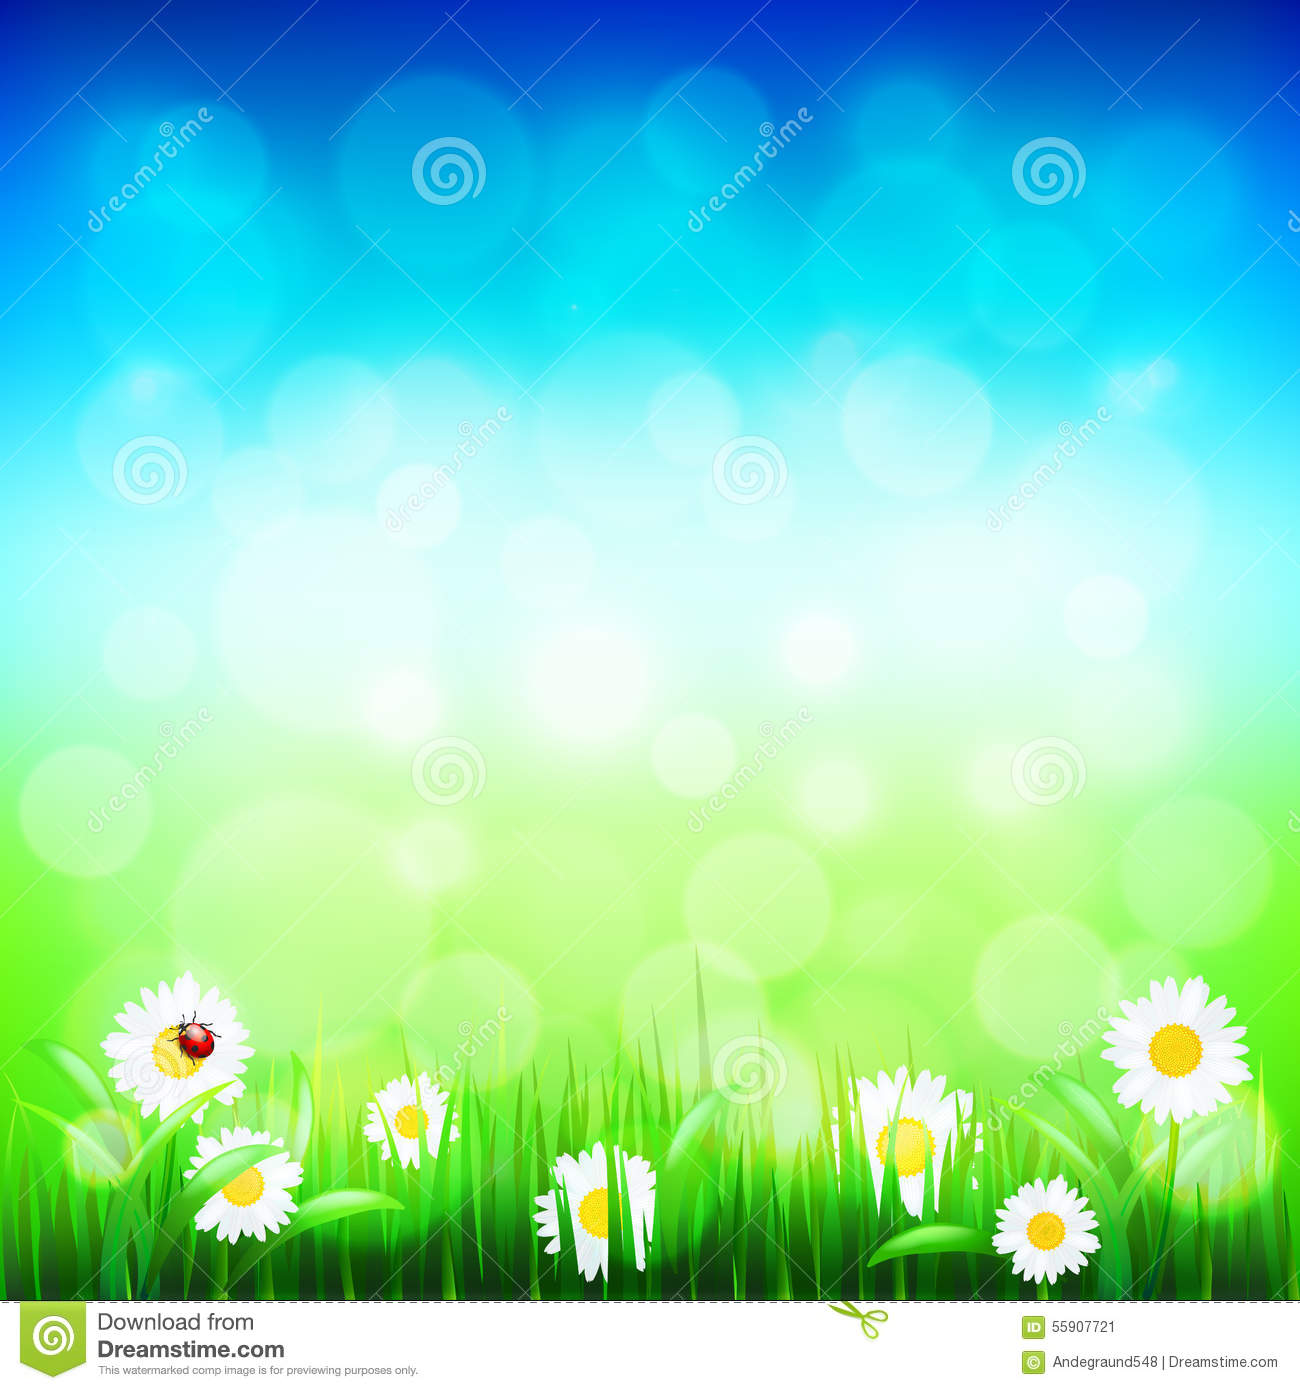 Green Grass And Blue Sky With Flowers Vector Stock Vector ...